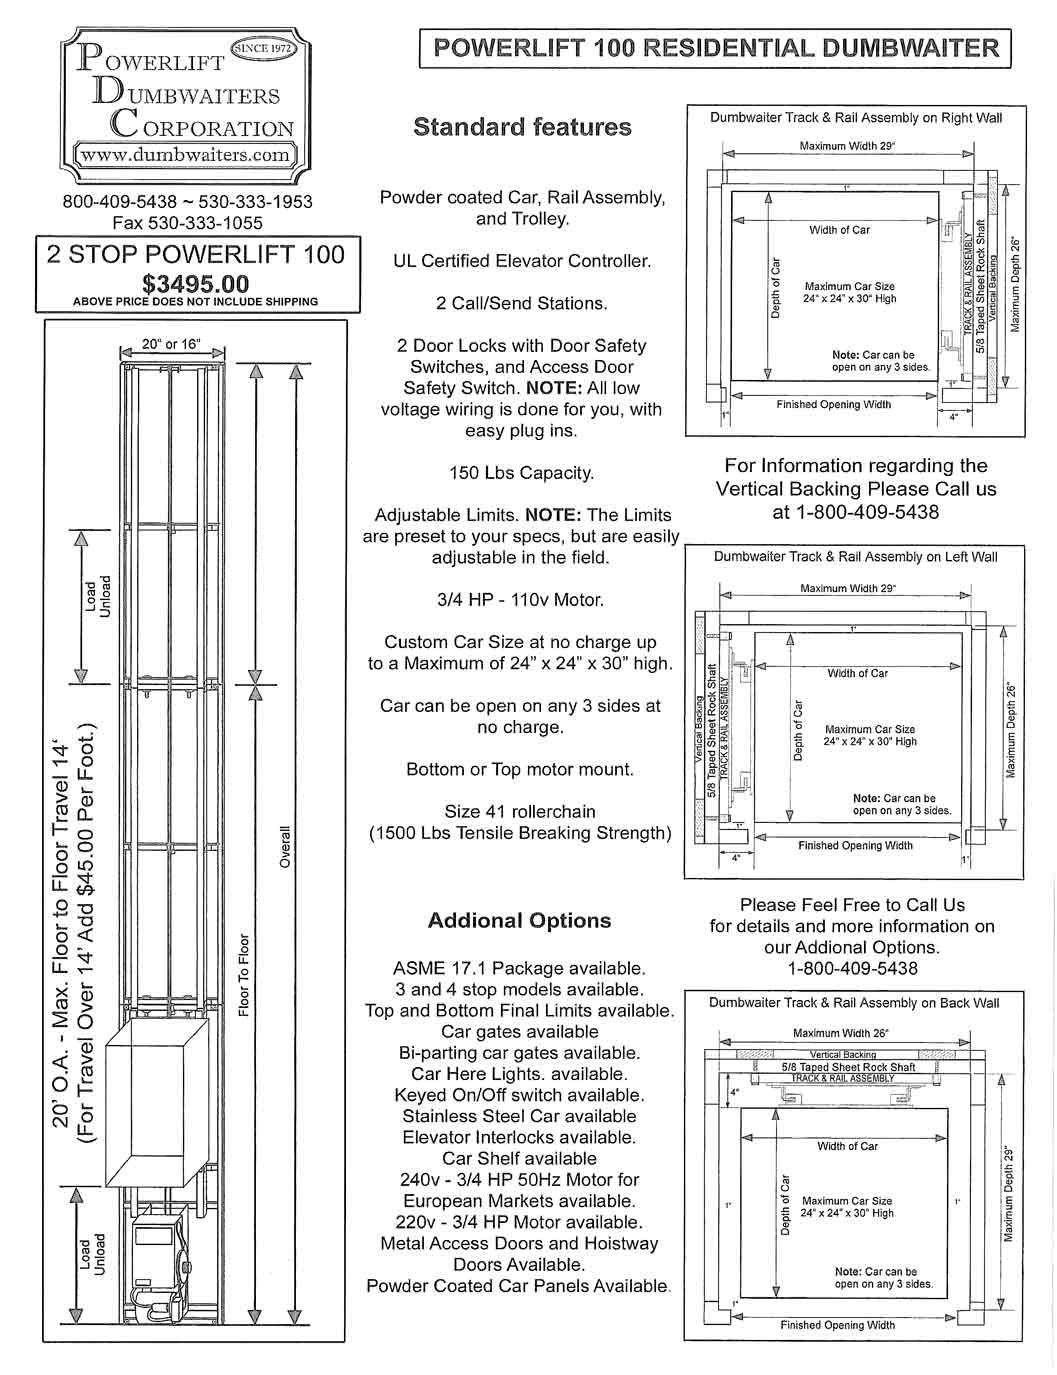 Pin By Mildred Berkeley On Design Moodbard Pinterest Dumbwaiter Wiring Diagram Ageing Dumb Waiter Lounge Cocktail Cabin Grow Old Music Cubicle Lounges